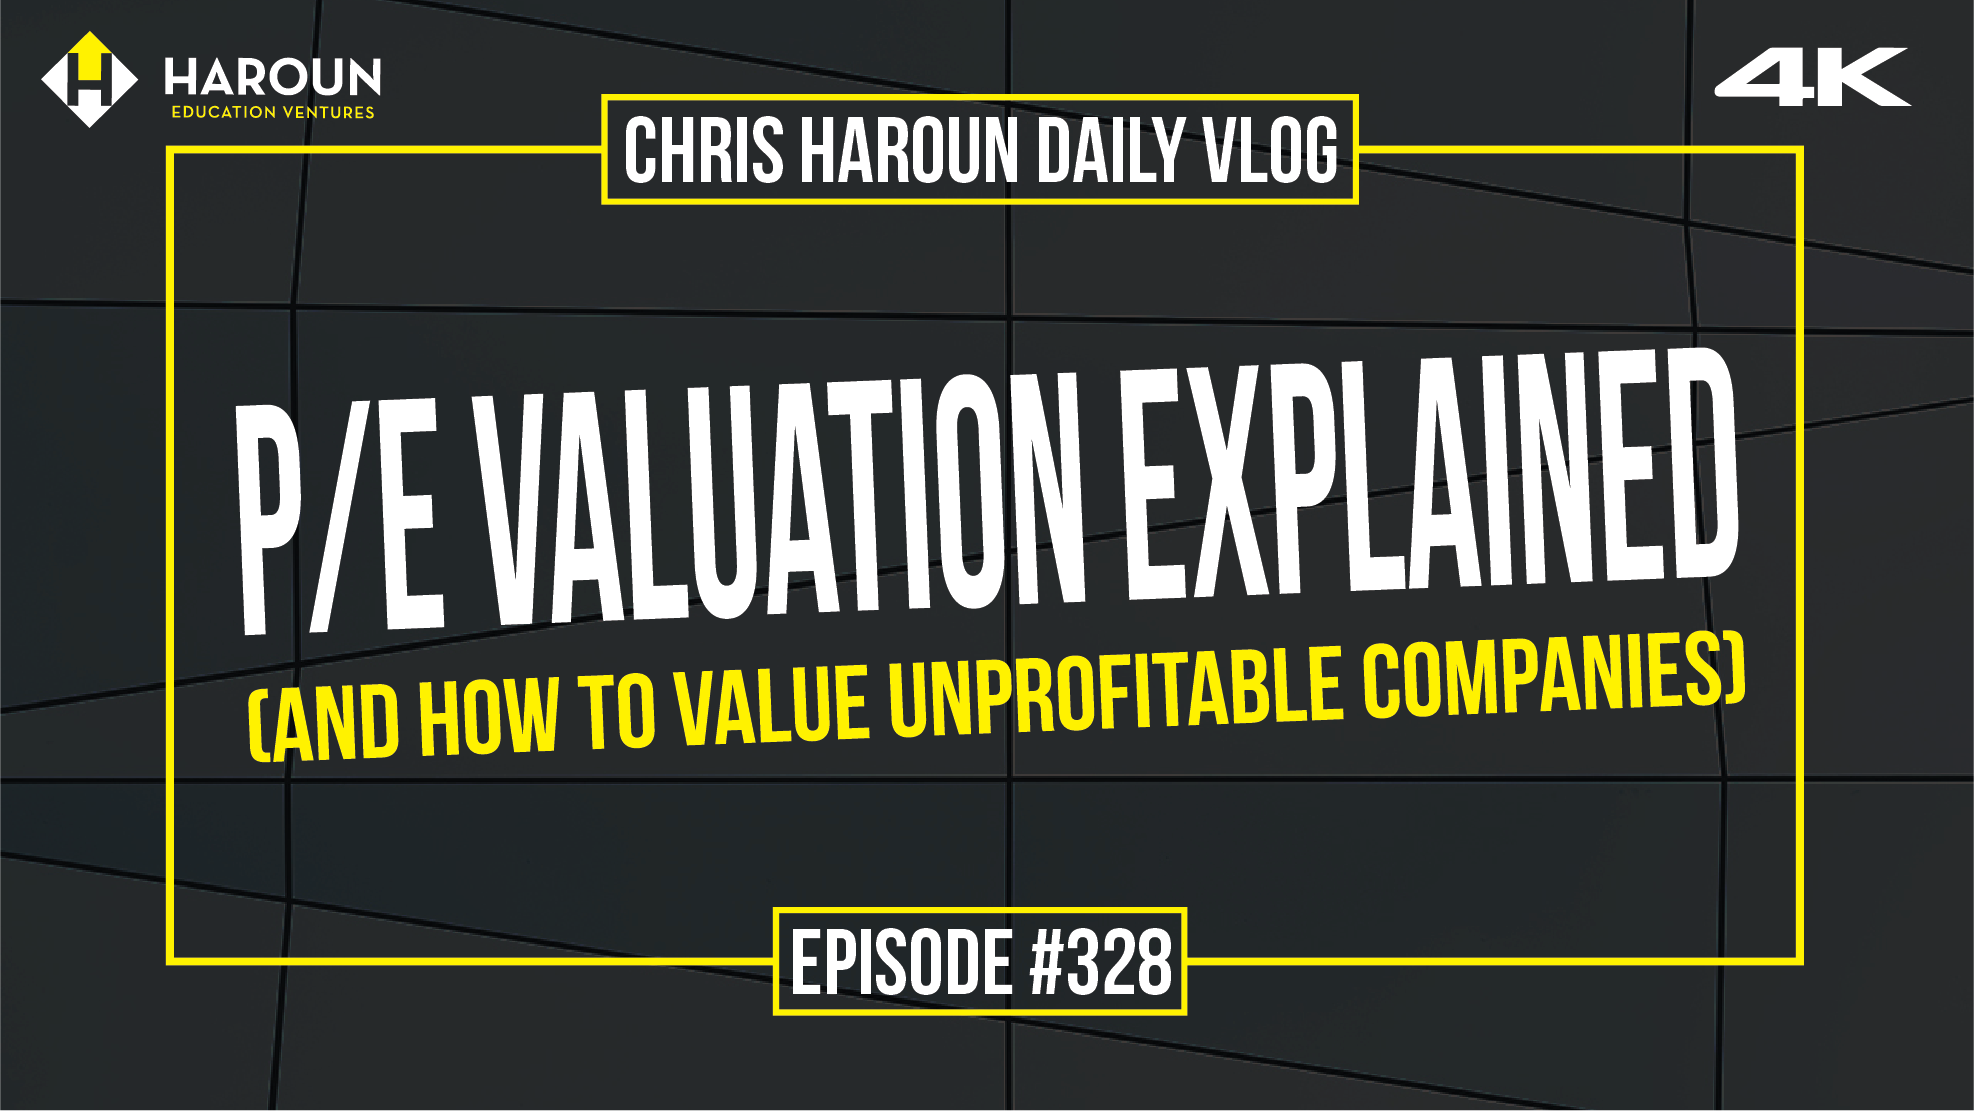 VLOG_328_6_24_2019_P:E Valuation Explained (and How to Value Unprofitable Companies).png